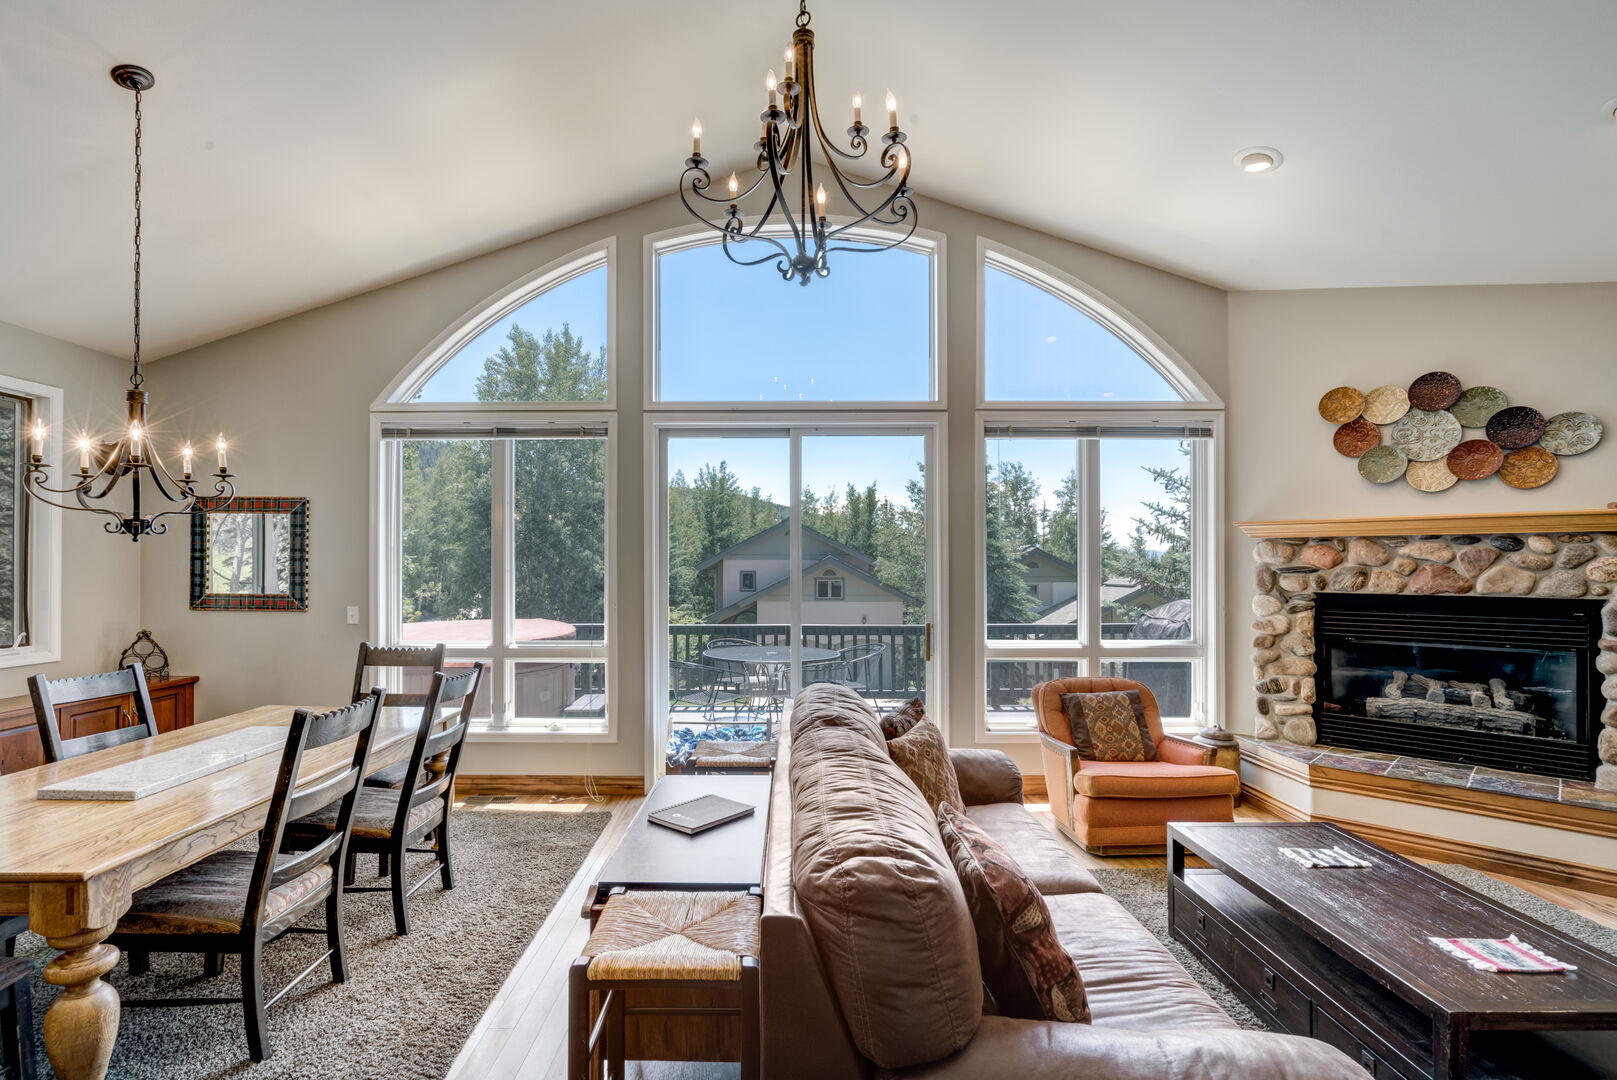 Perfect for families, couples, cozy, open floor plan with gas fireplace